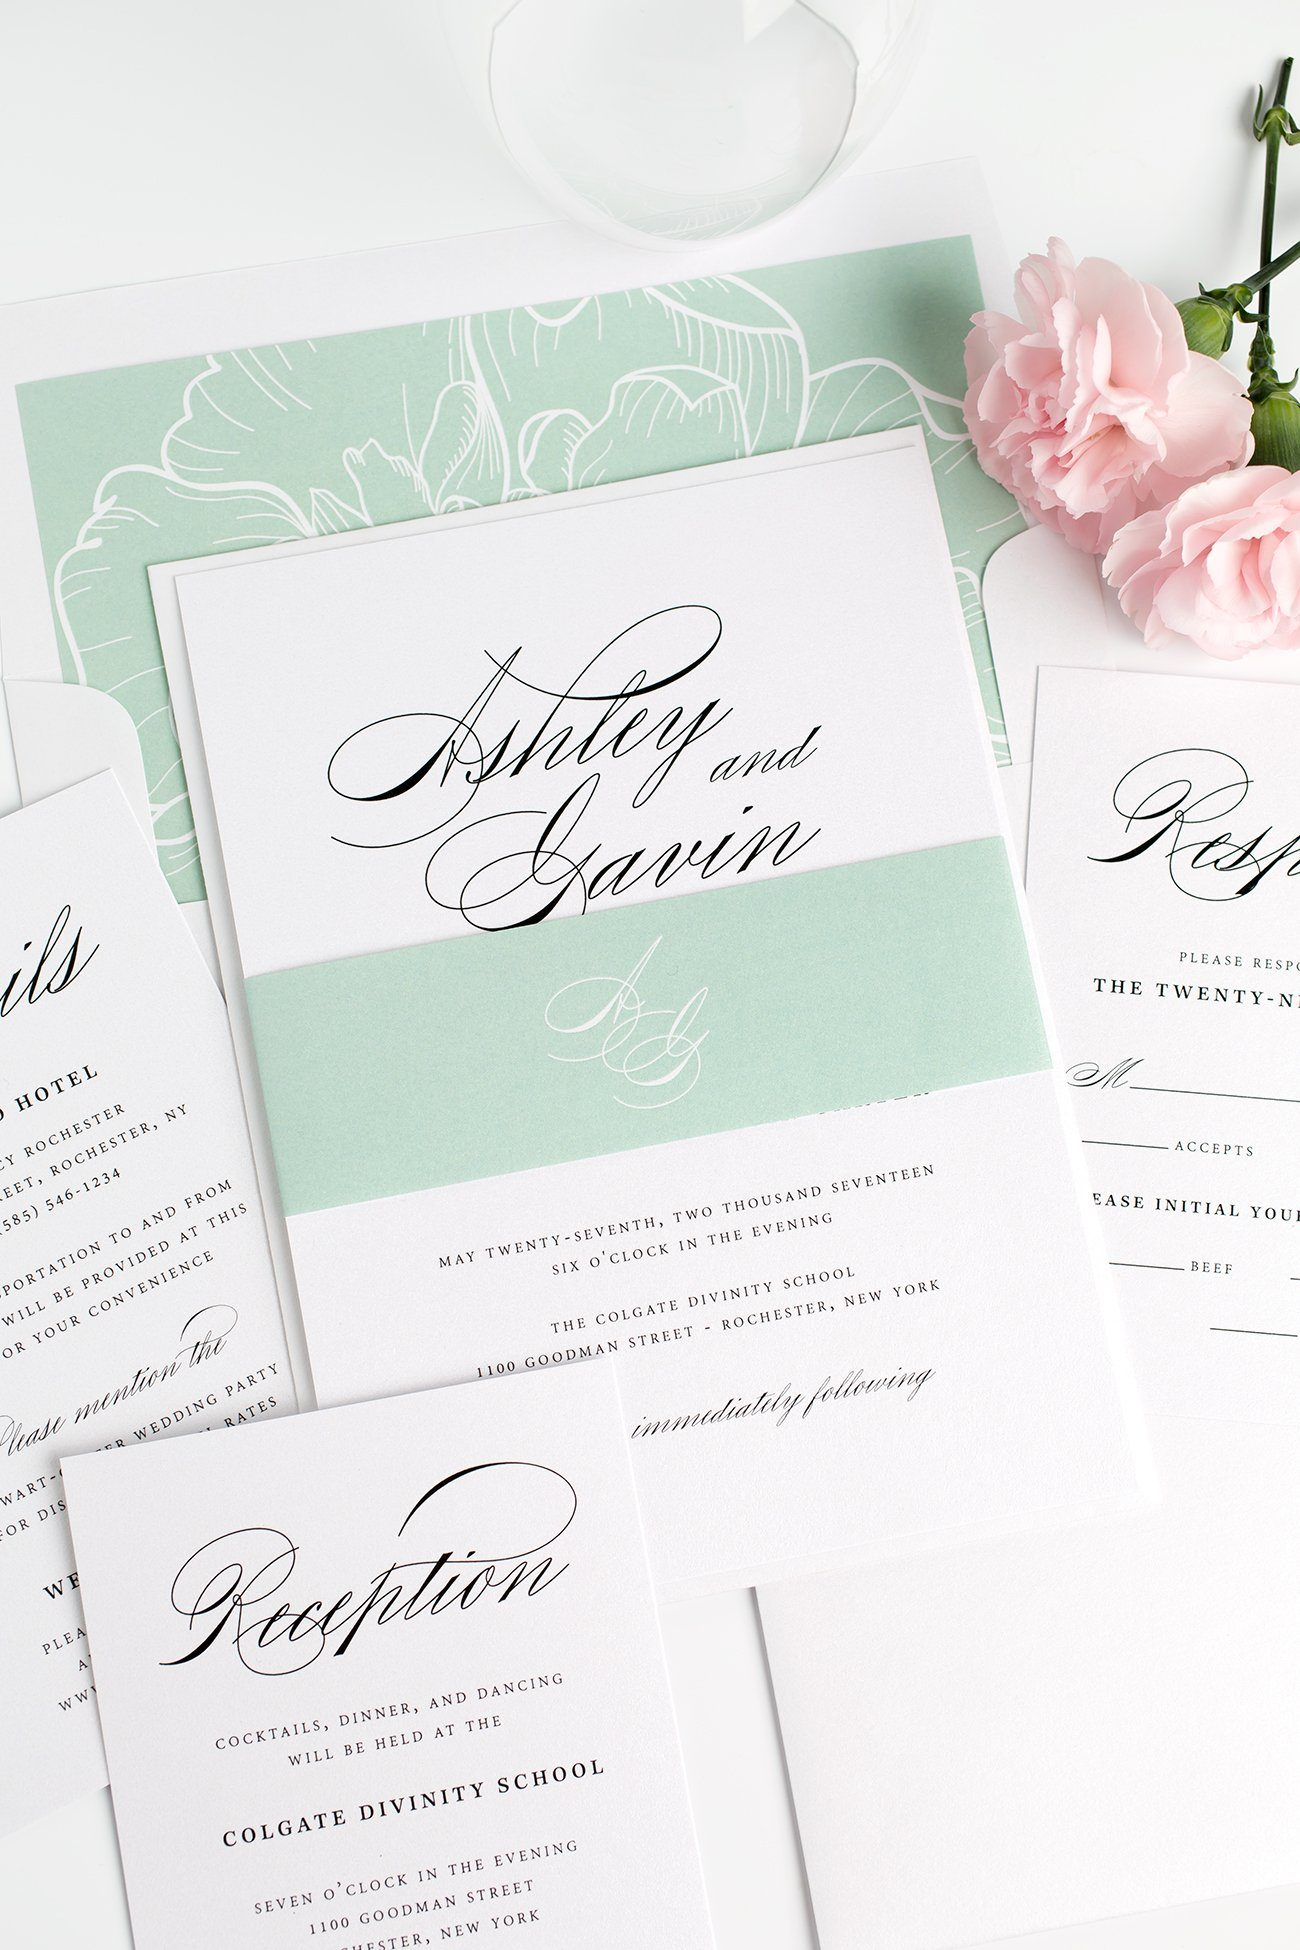 Simple and Classic Wedding Invitations in Light Green with a Floral Envelope Liner